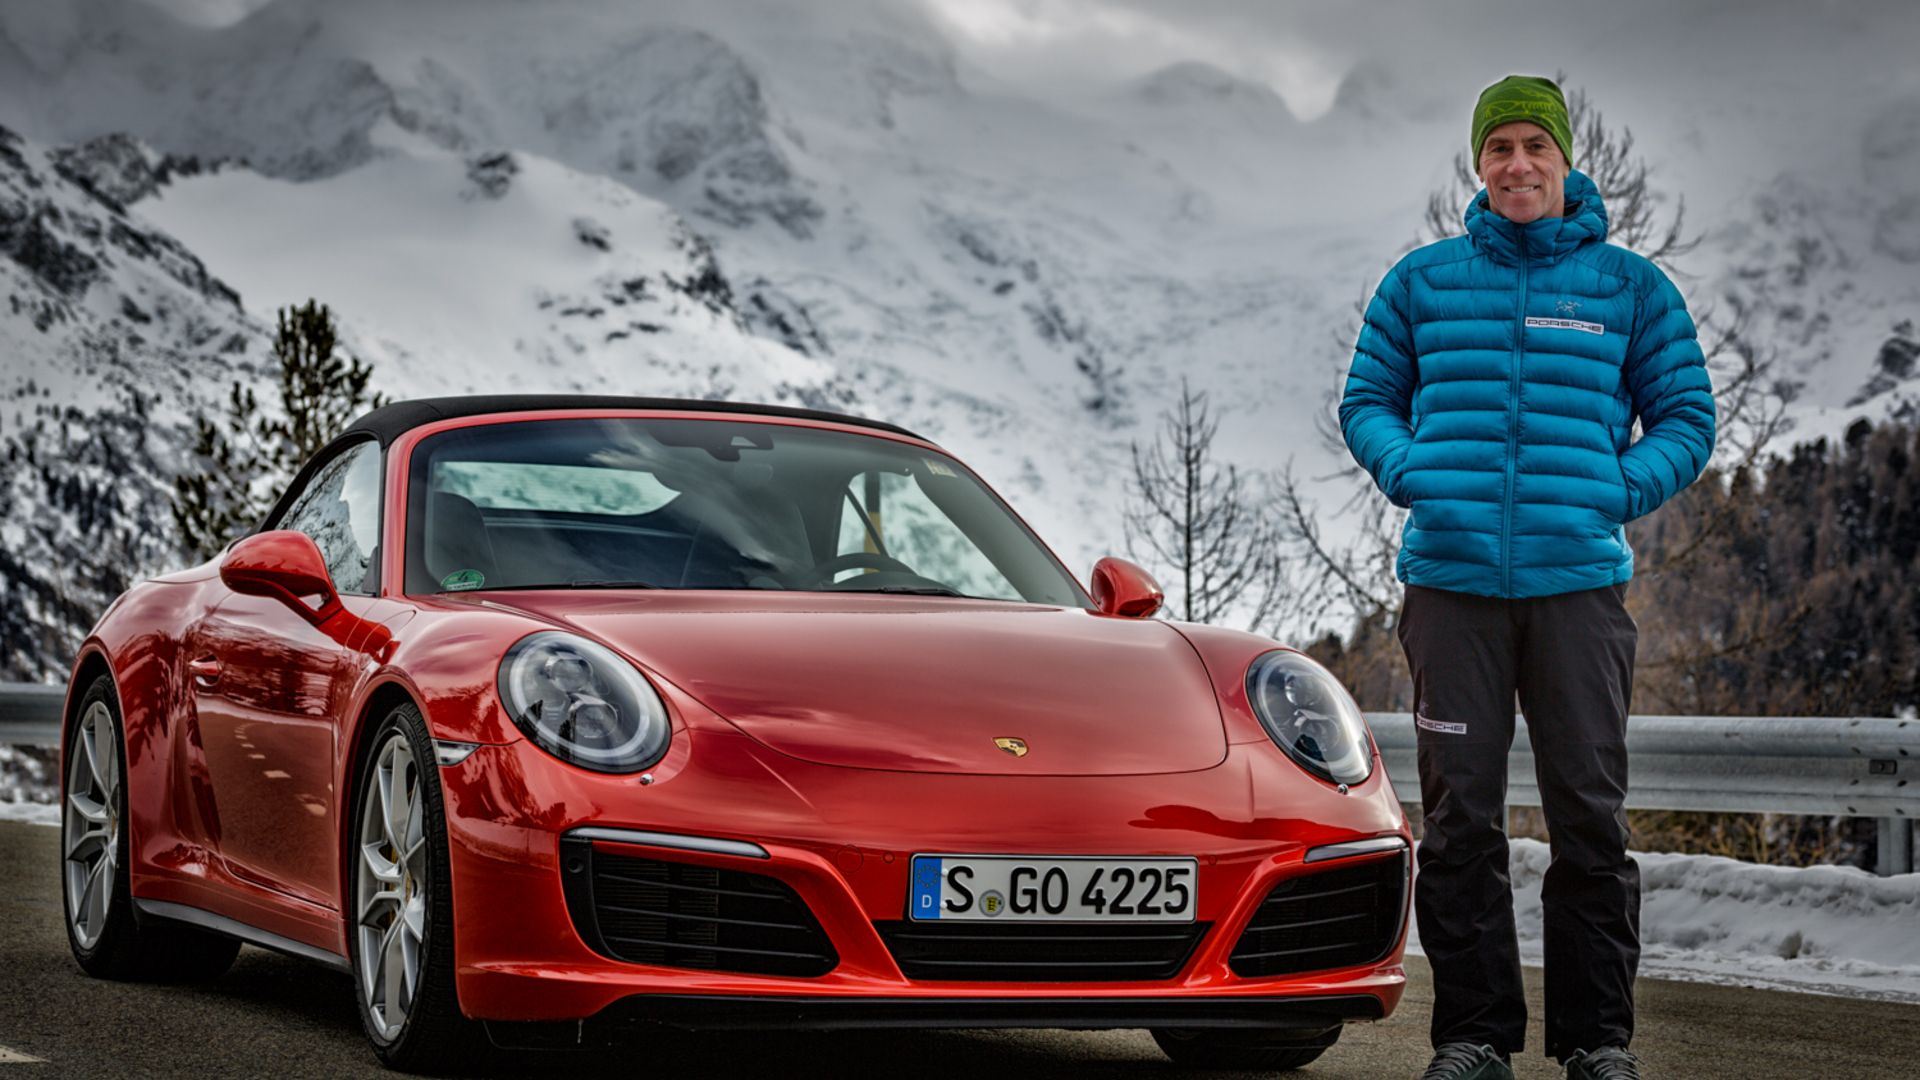 Porsche 911 proves itself a car for all seasons